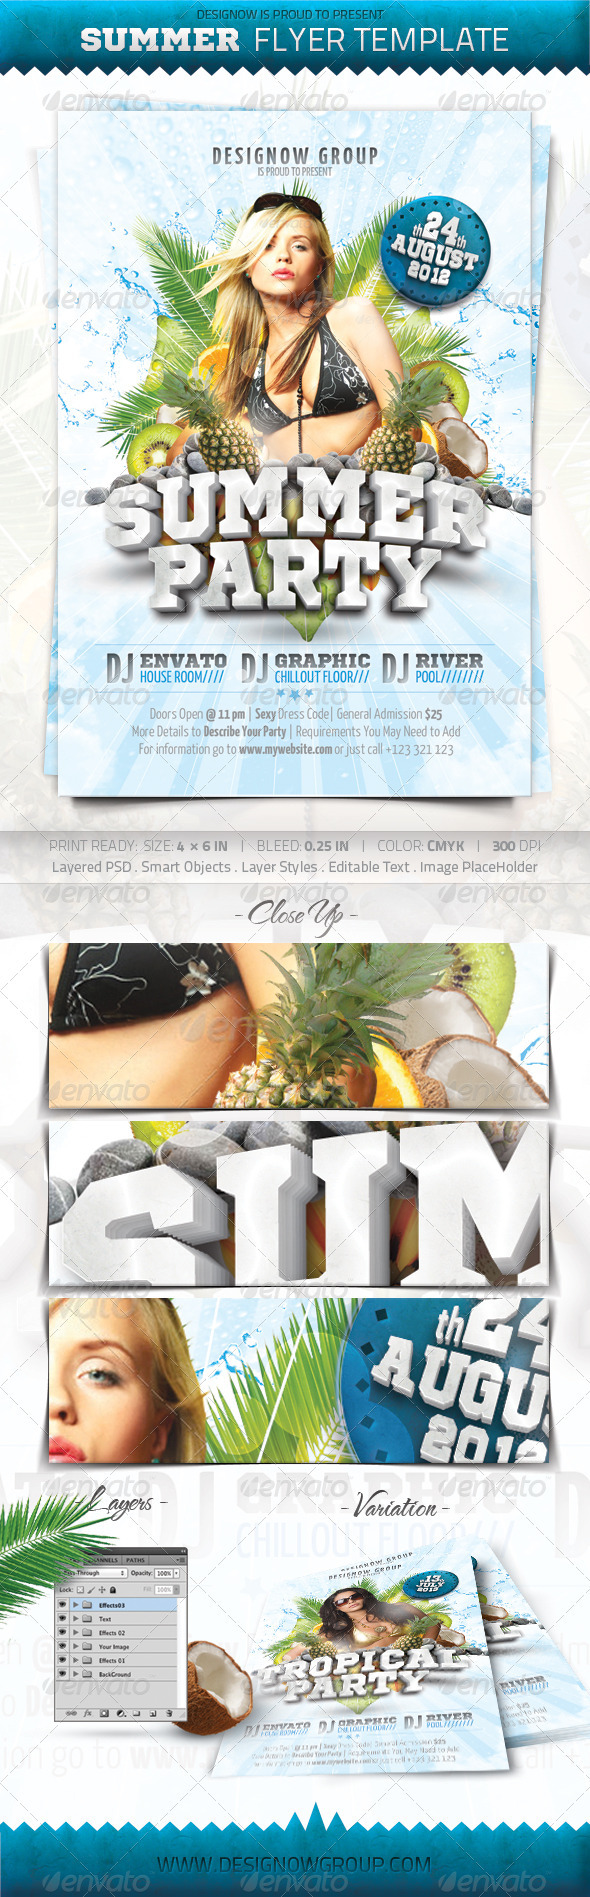 Tropical Summer Party Flyer Template - Clubs & Parties Events